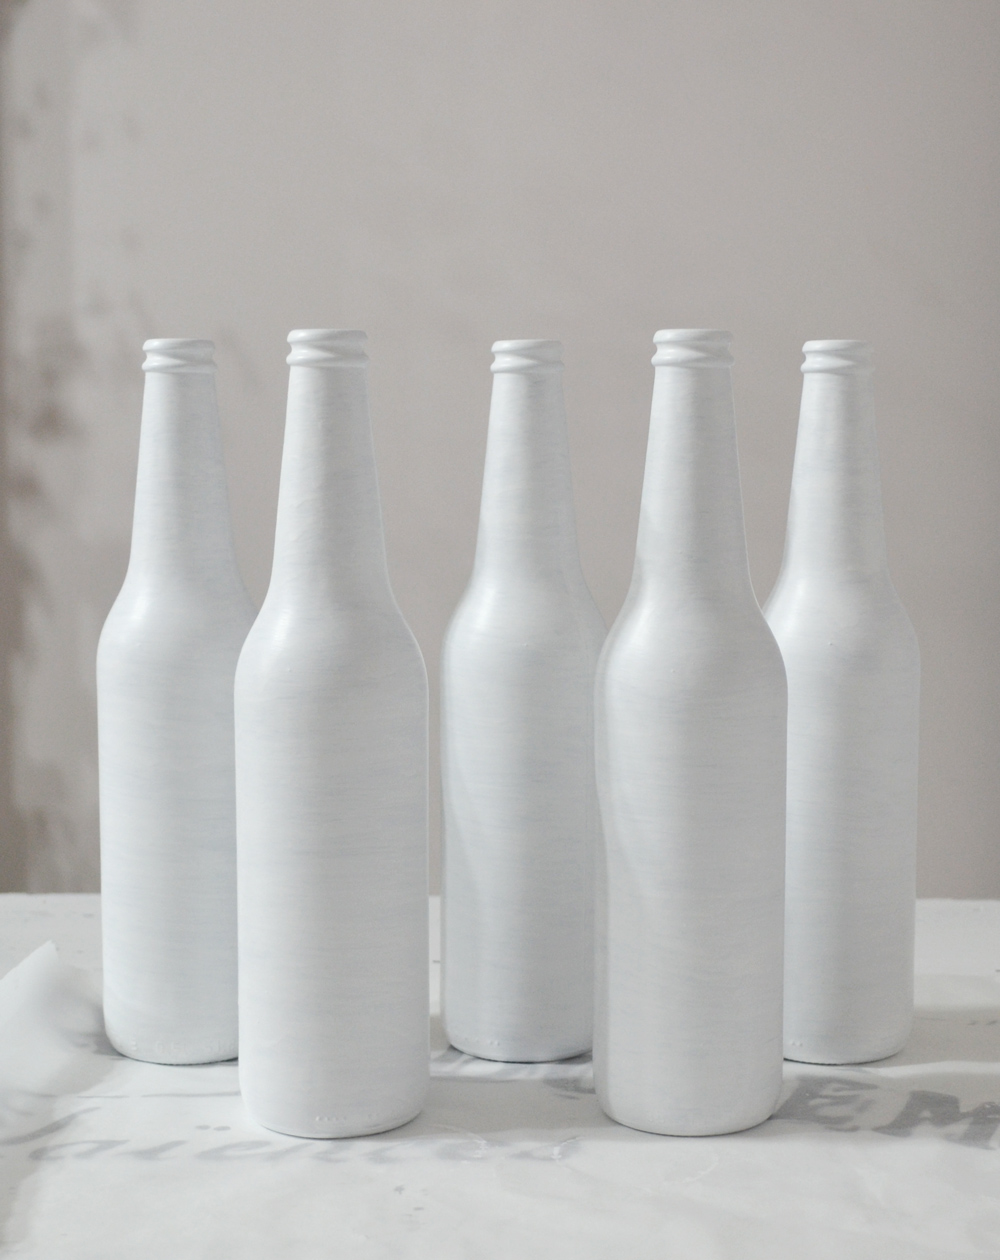 DIY Painted and Distressed French Bottles project + free printable